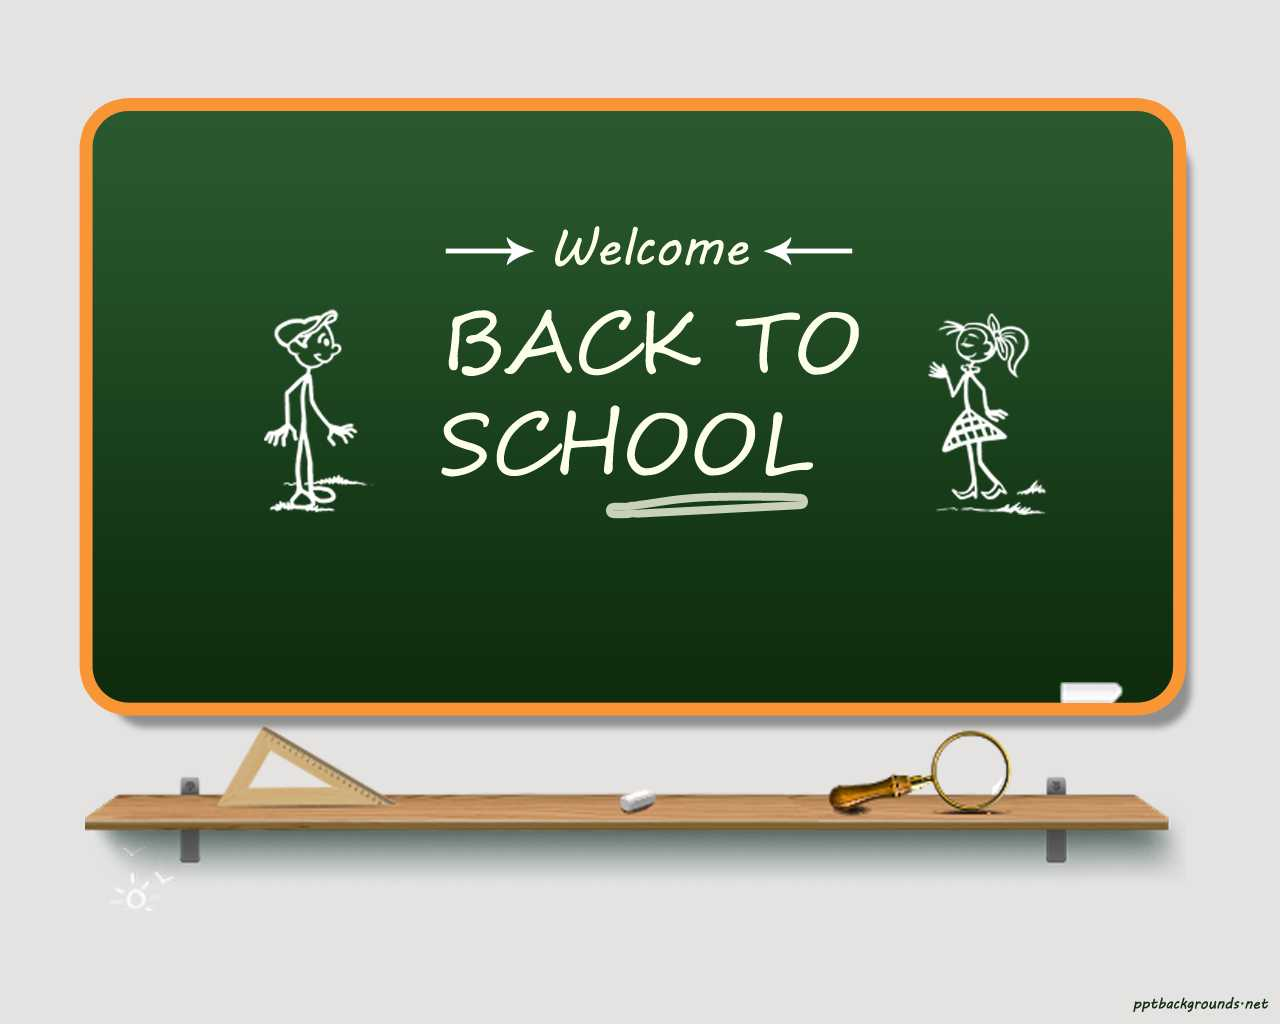 Back To School 2014 - 2015 Backgrounds For Powerpoint Pertaining To Back To School Powerpoint Template